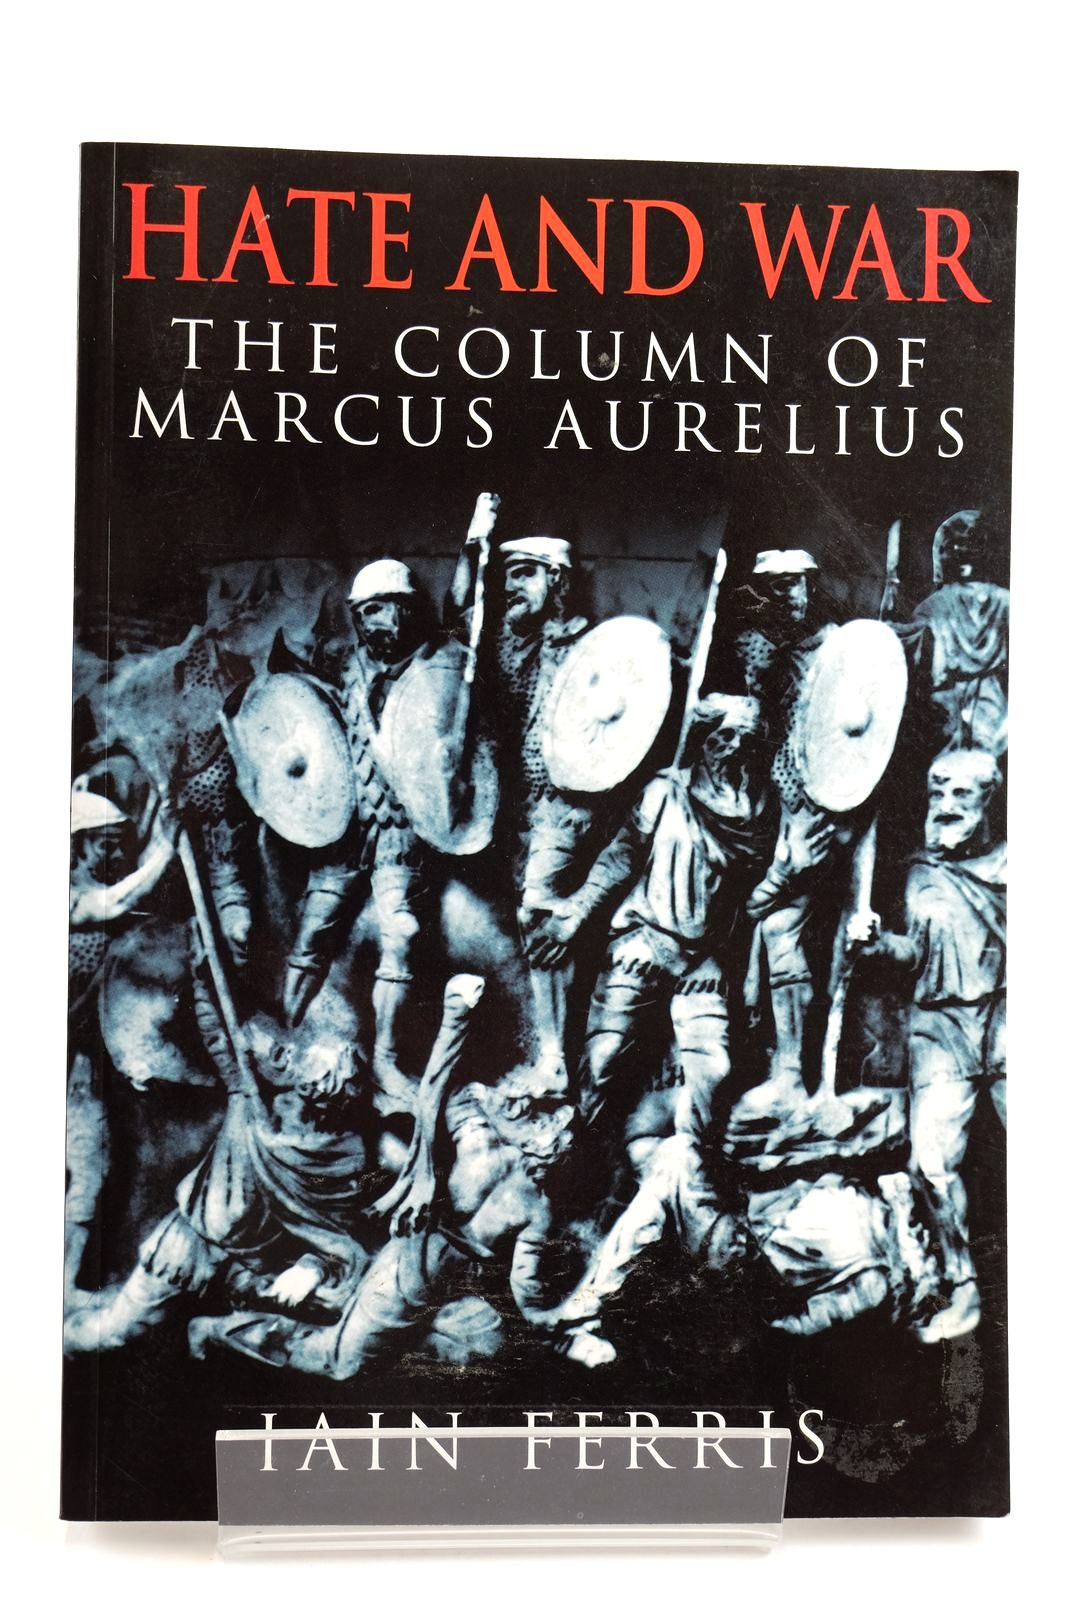 Photo of HATE AND WAR THE COLUMN OF MARCUS AURELIUS- Stock Number: 2132655